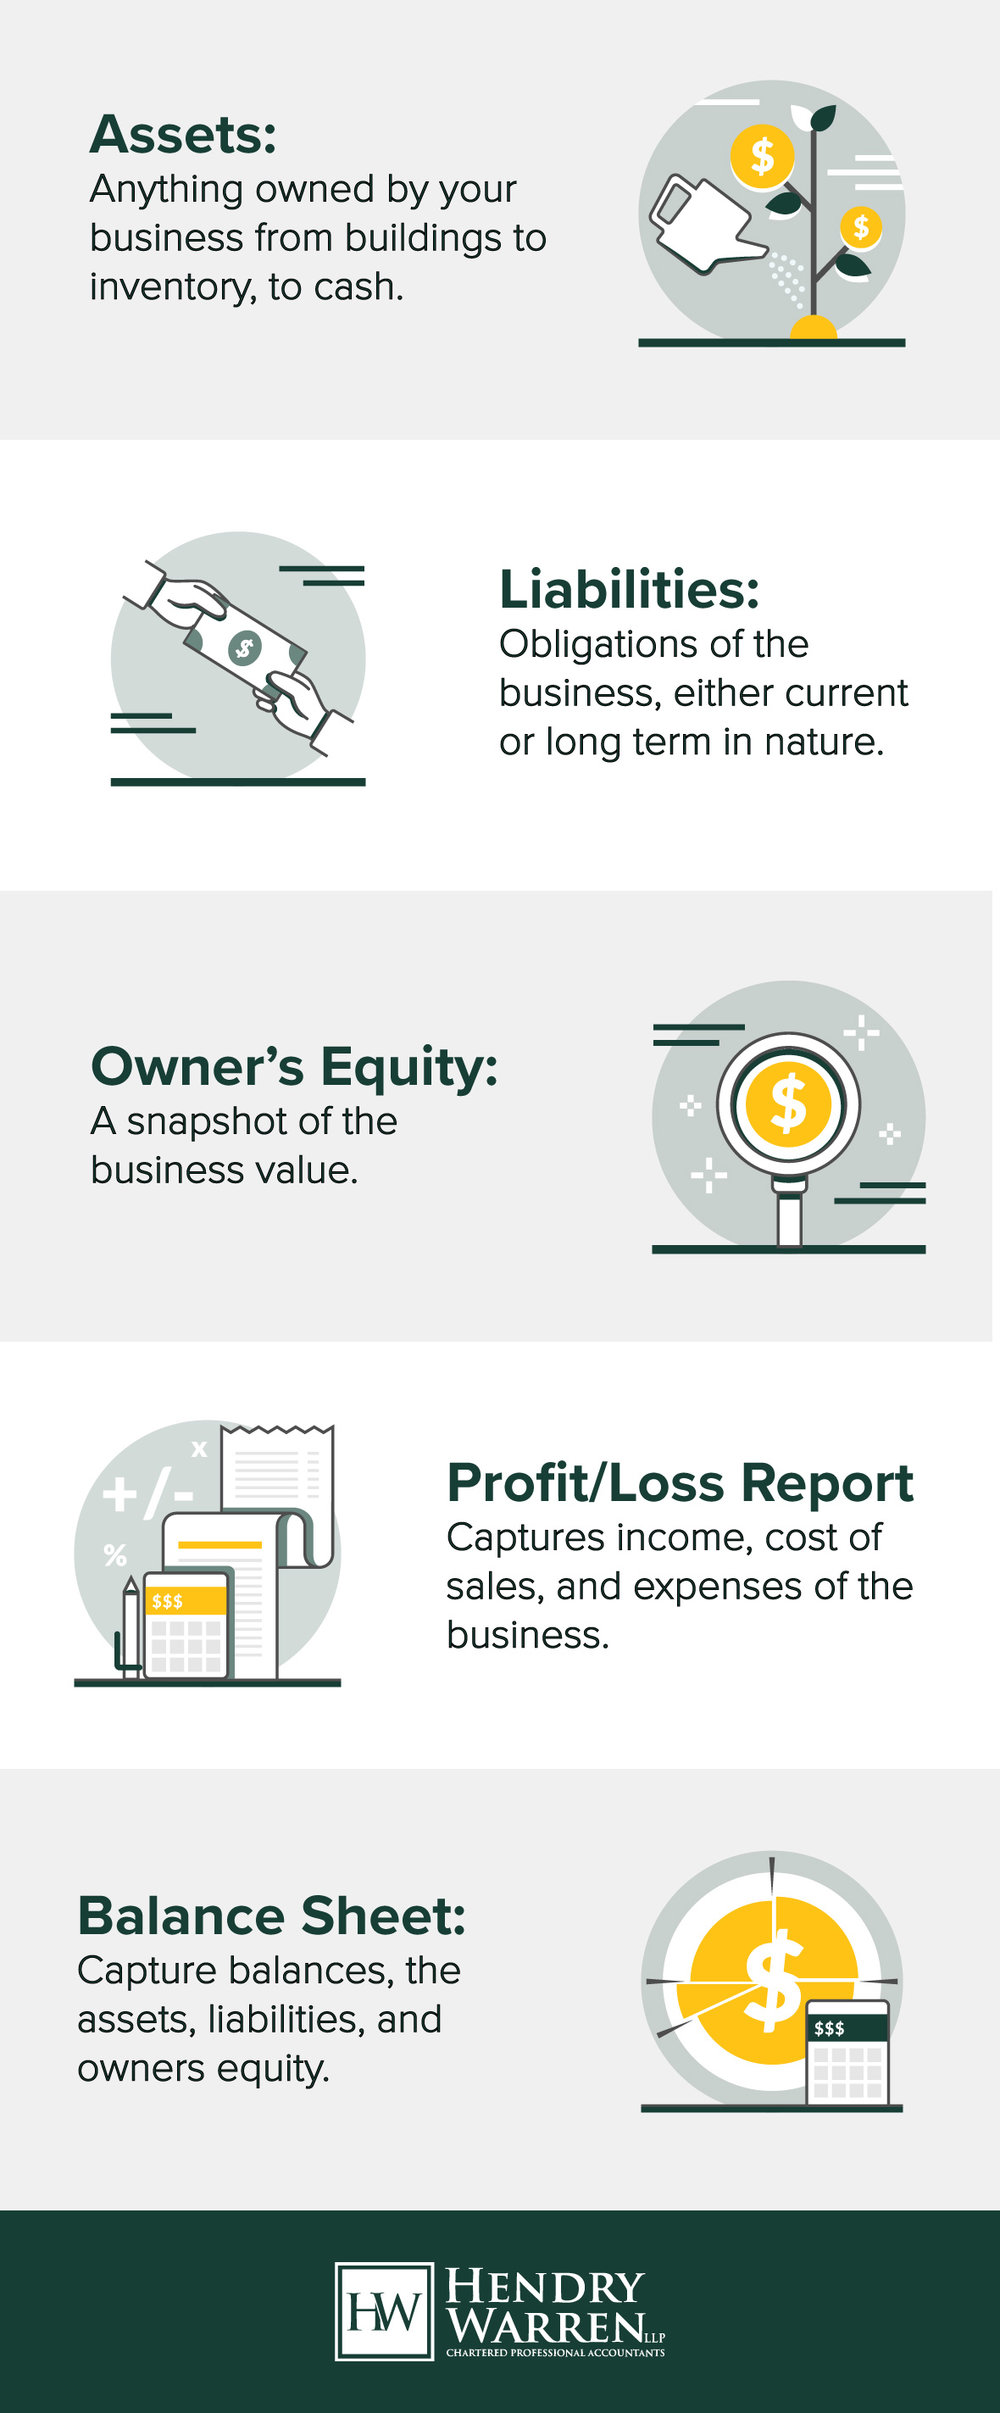 HW_AccountingTerms-Infographic.jpg